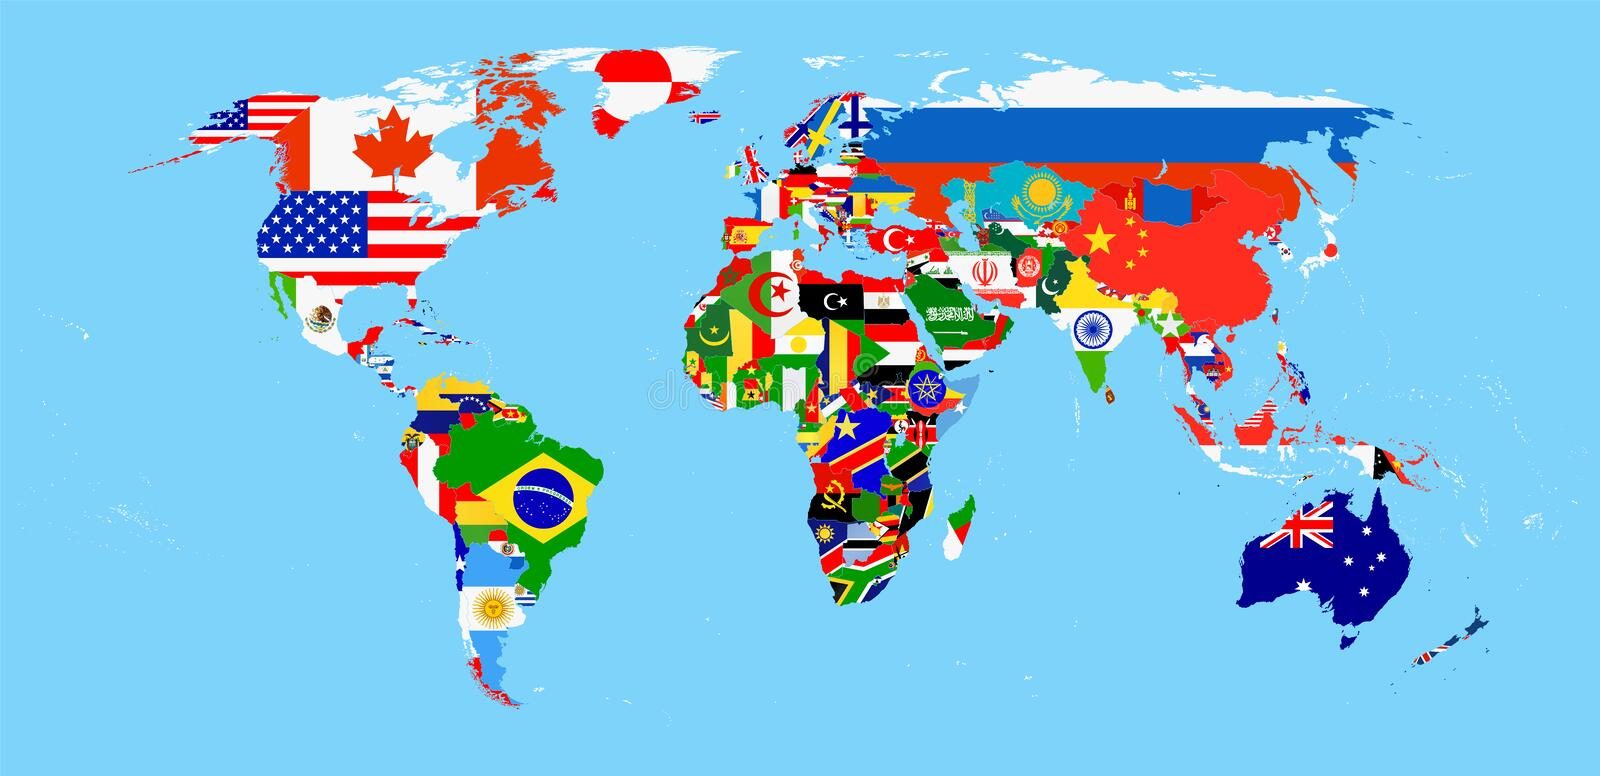 World map with flags stock vector illustration of graphic 87318014 download world map with flags stock vector illustration of graphic 87318014 gumiabroncs Gallery